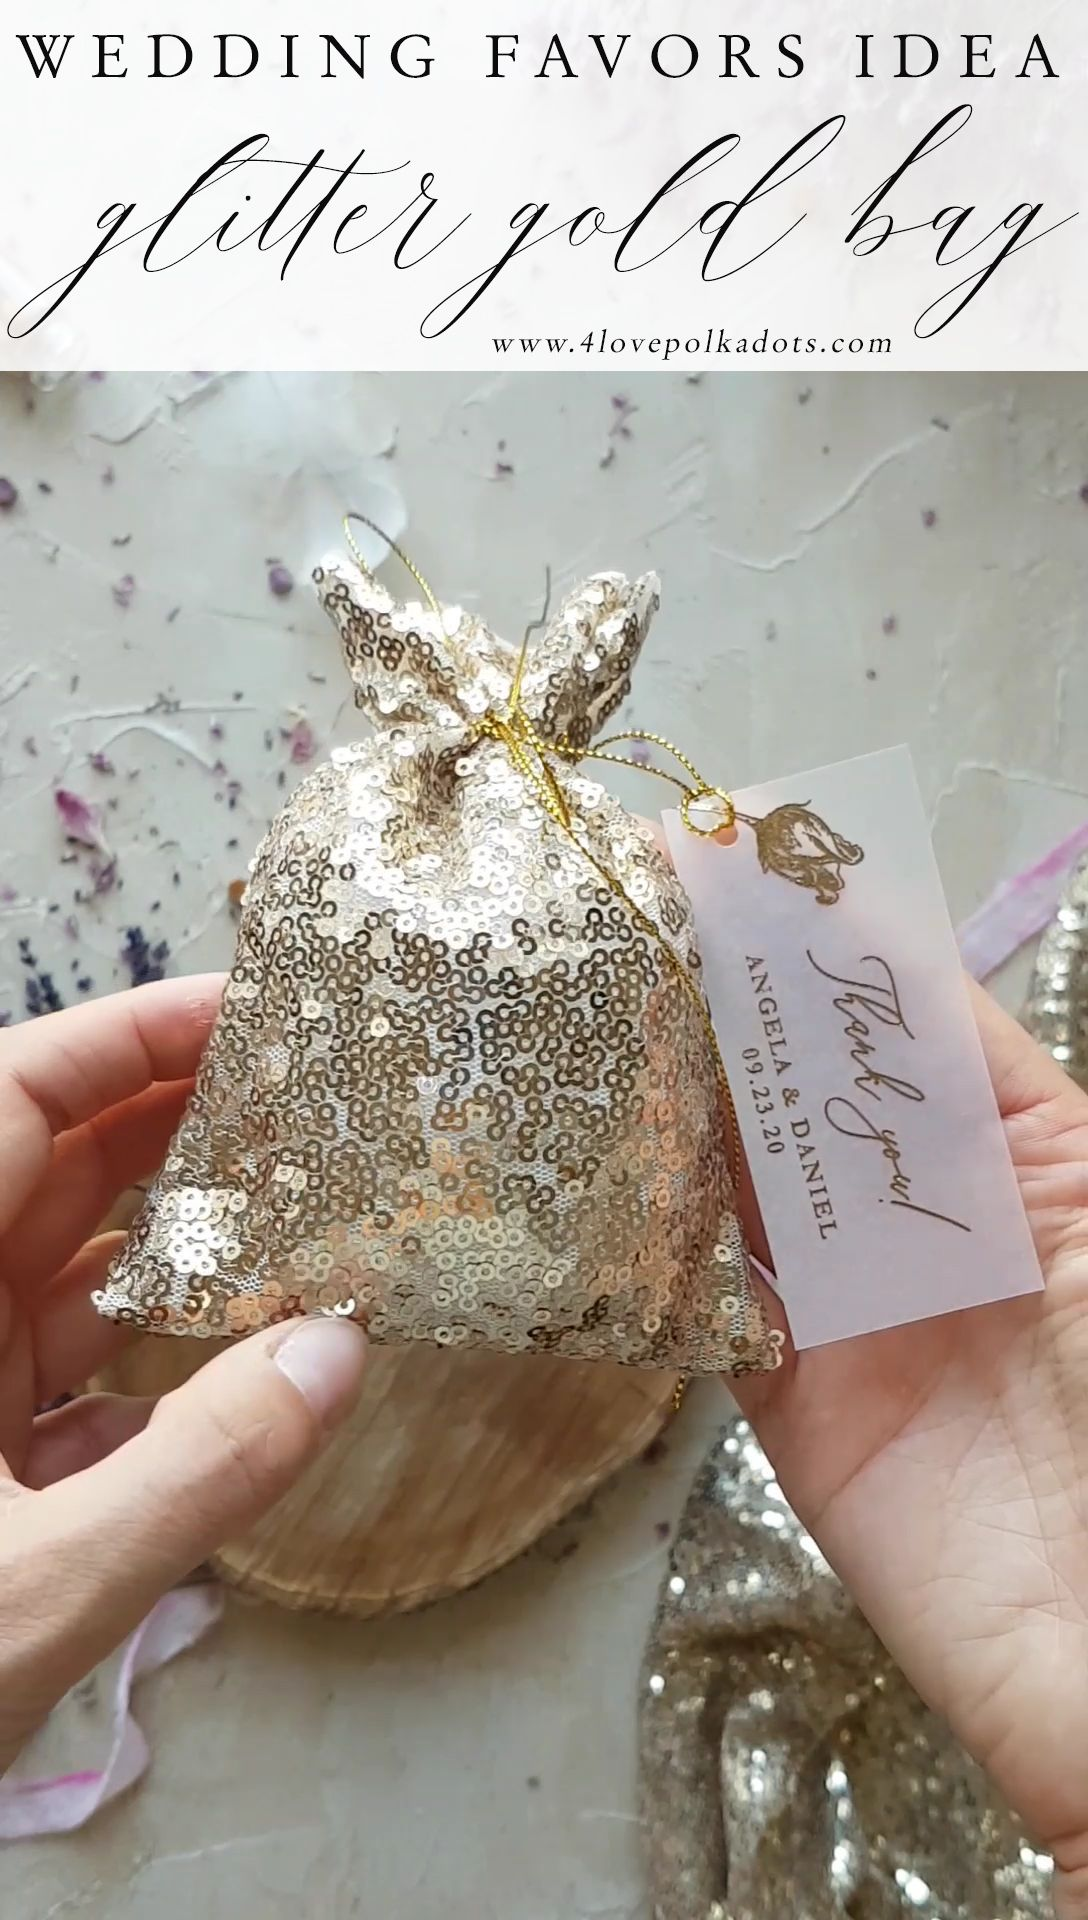 Wedding Favors Idea Glitter Bags Perfect For Little Gift